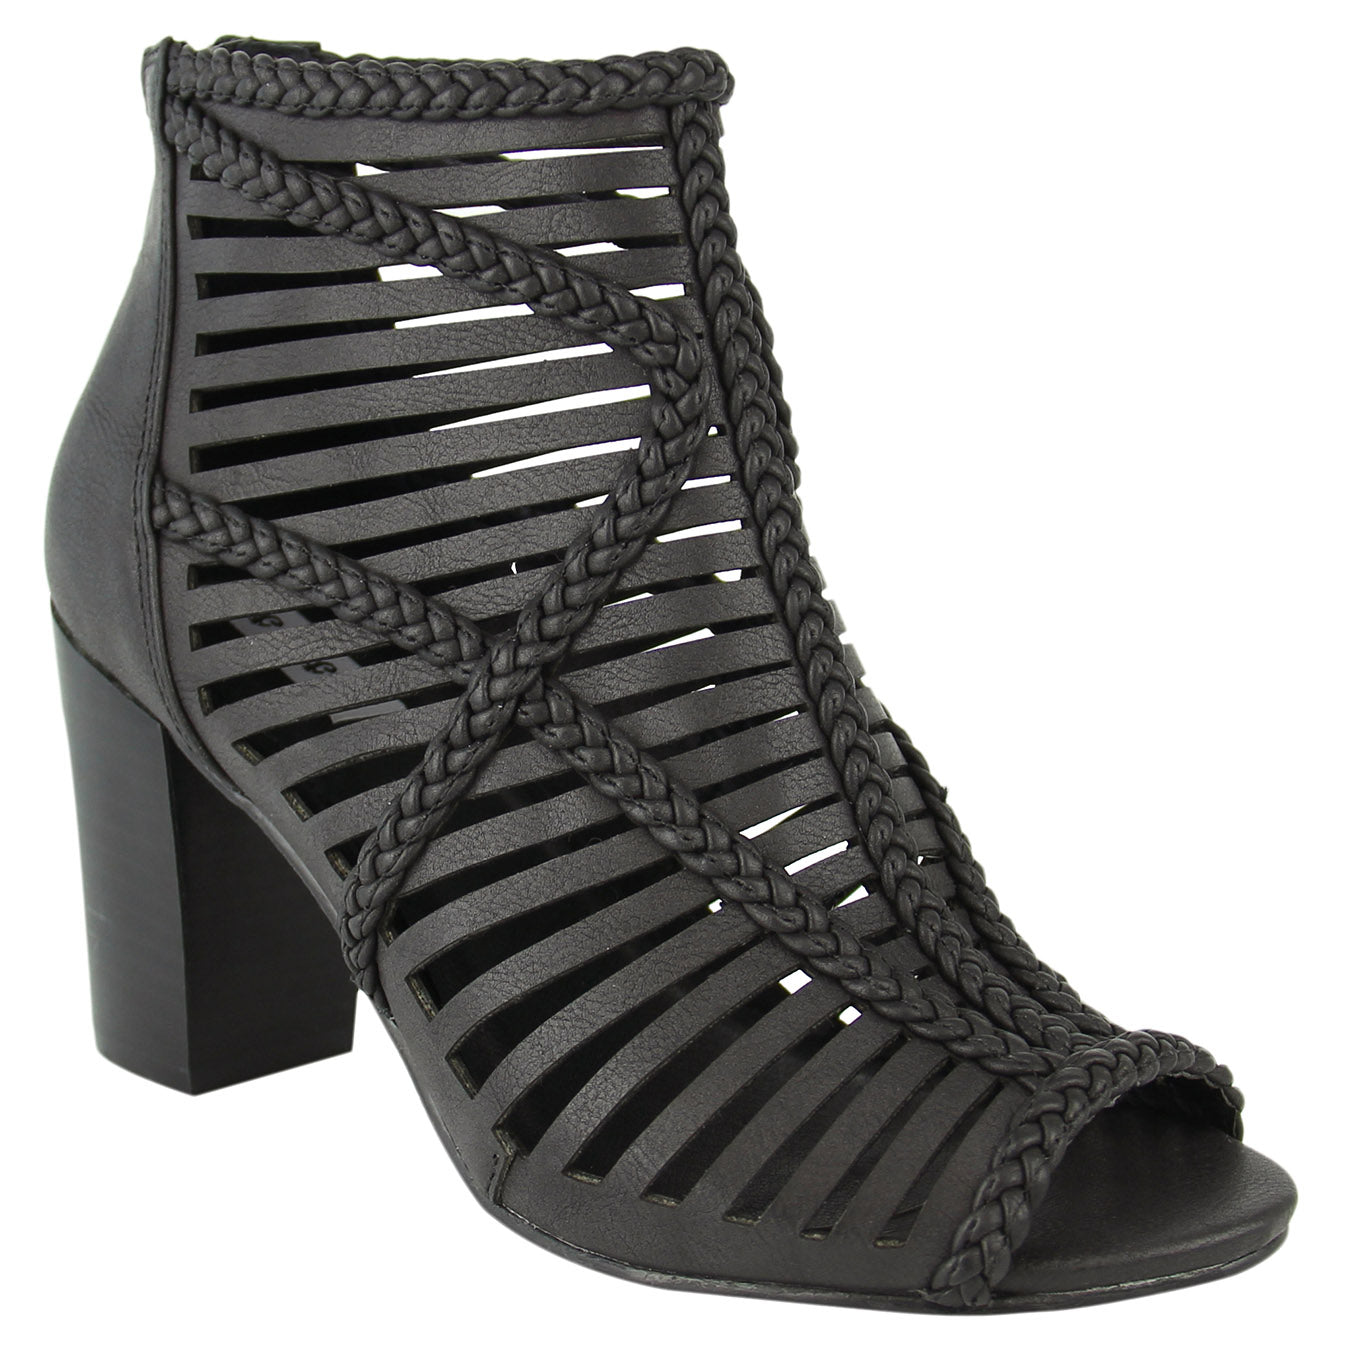 not_rated_casual_pump_stacked-heel_black_sandal_women_ caged-upper_zipper_spring_fashion